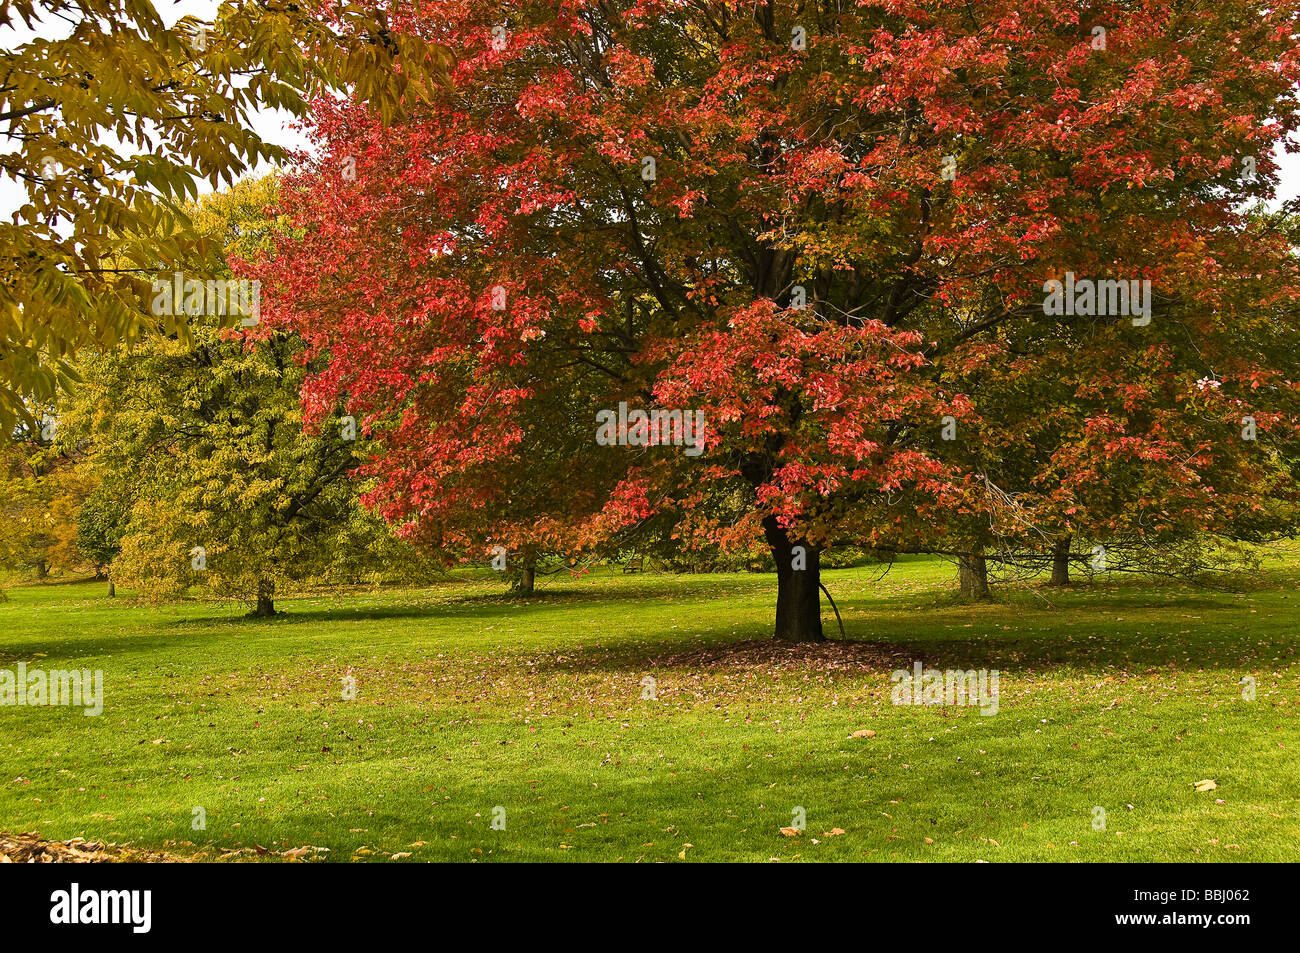 Maple Tree with red leaves Royal Botanical Gardens Hamilton Canada - Stock Image